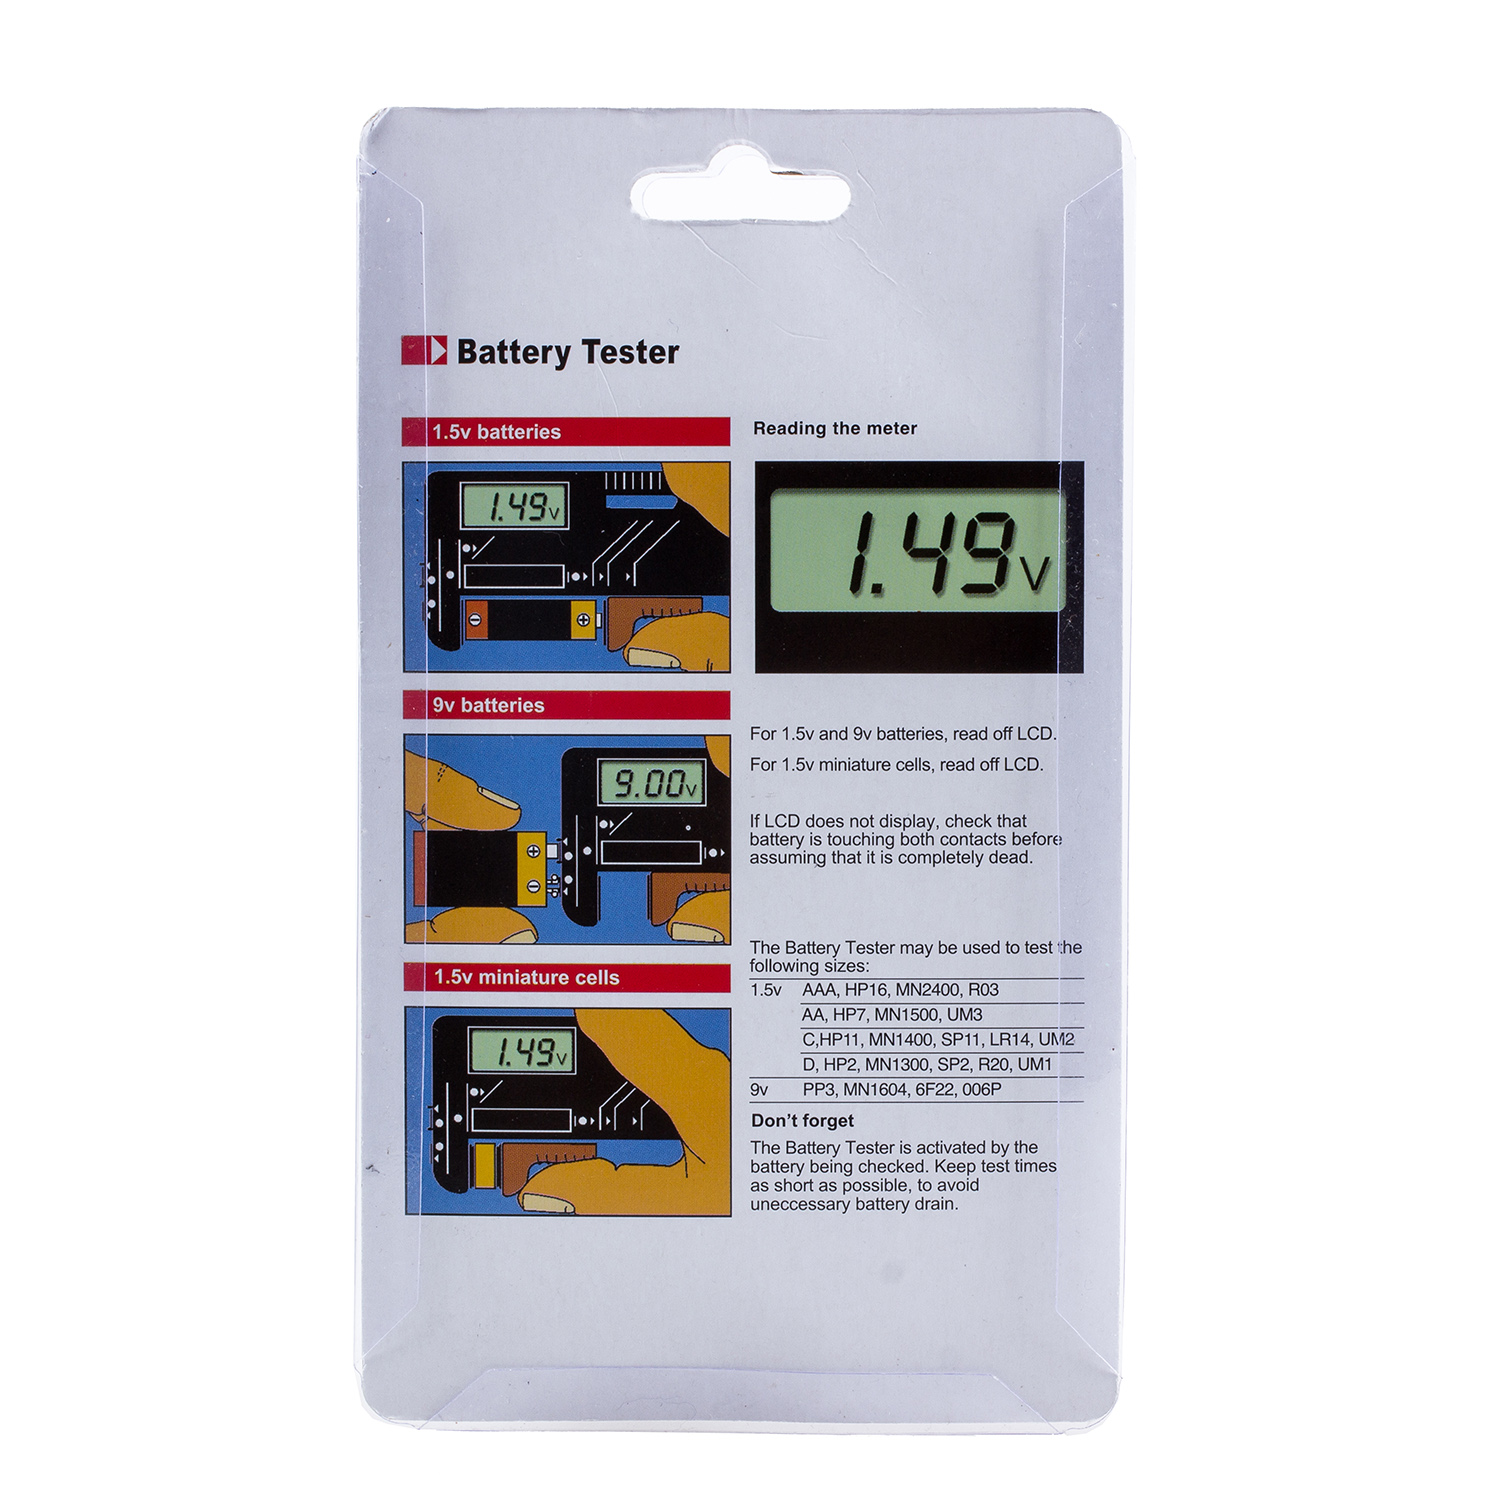 9 Volt Battery Tester : New uk battery tester volt checker for v and aa aaa